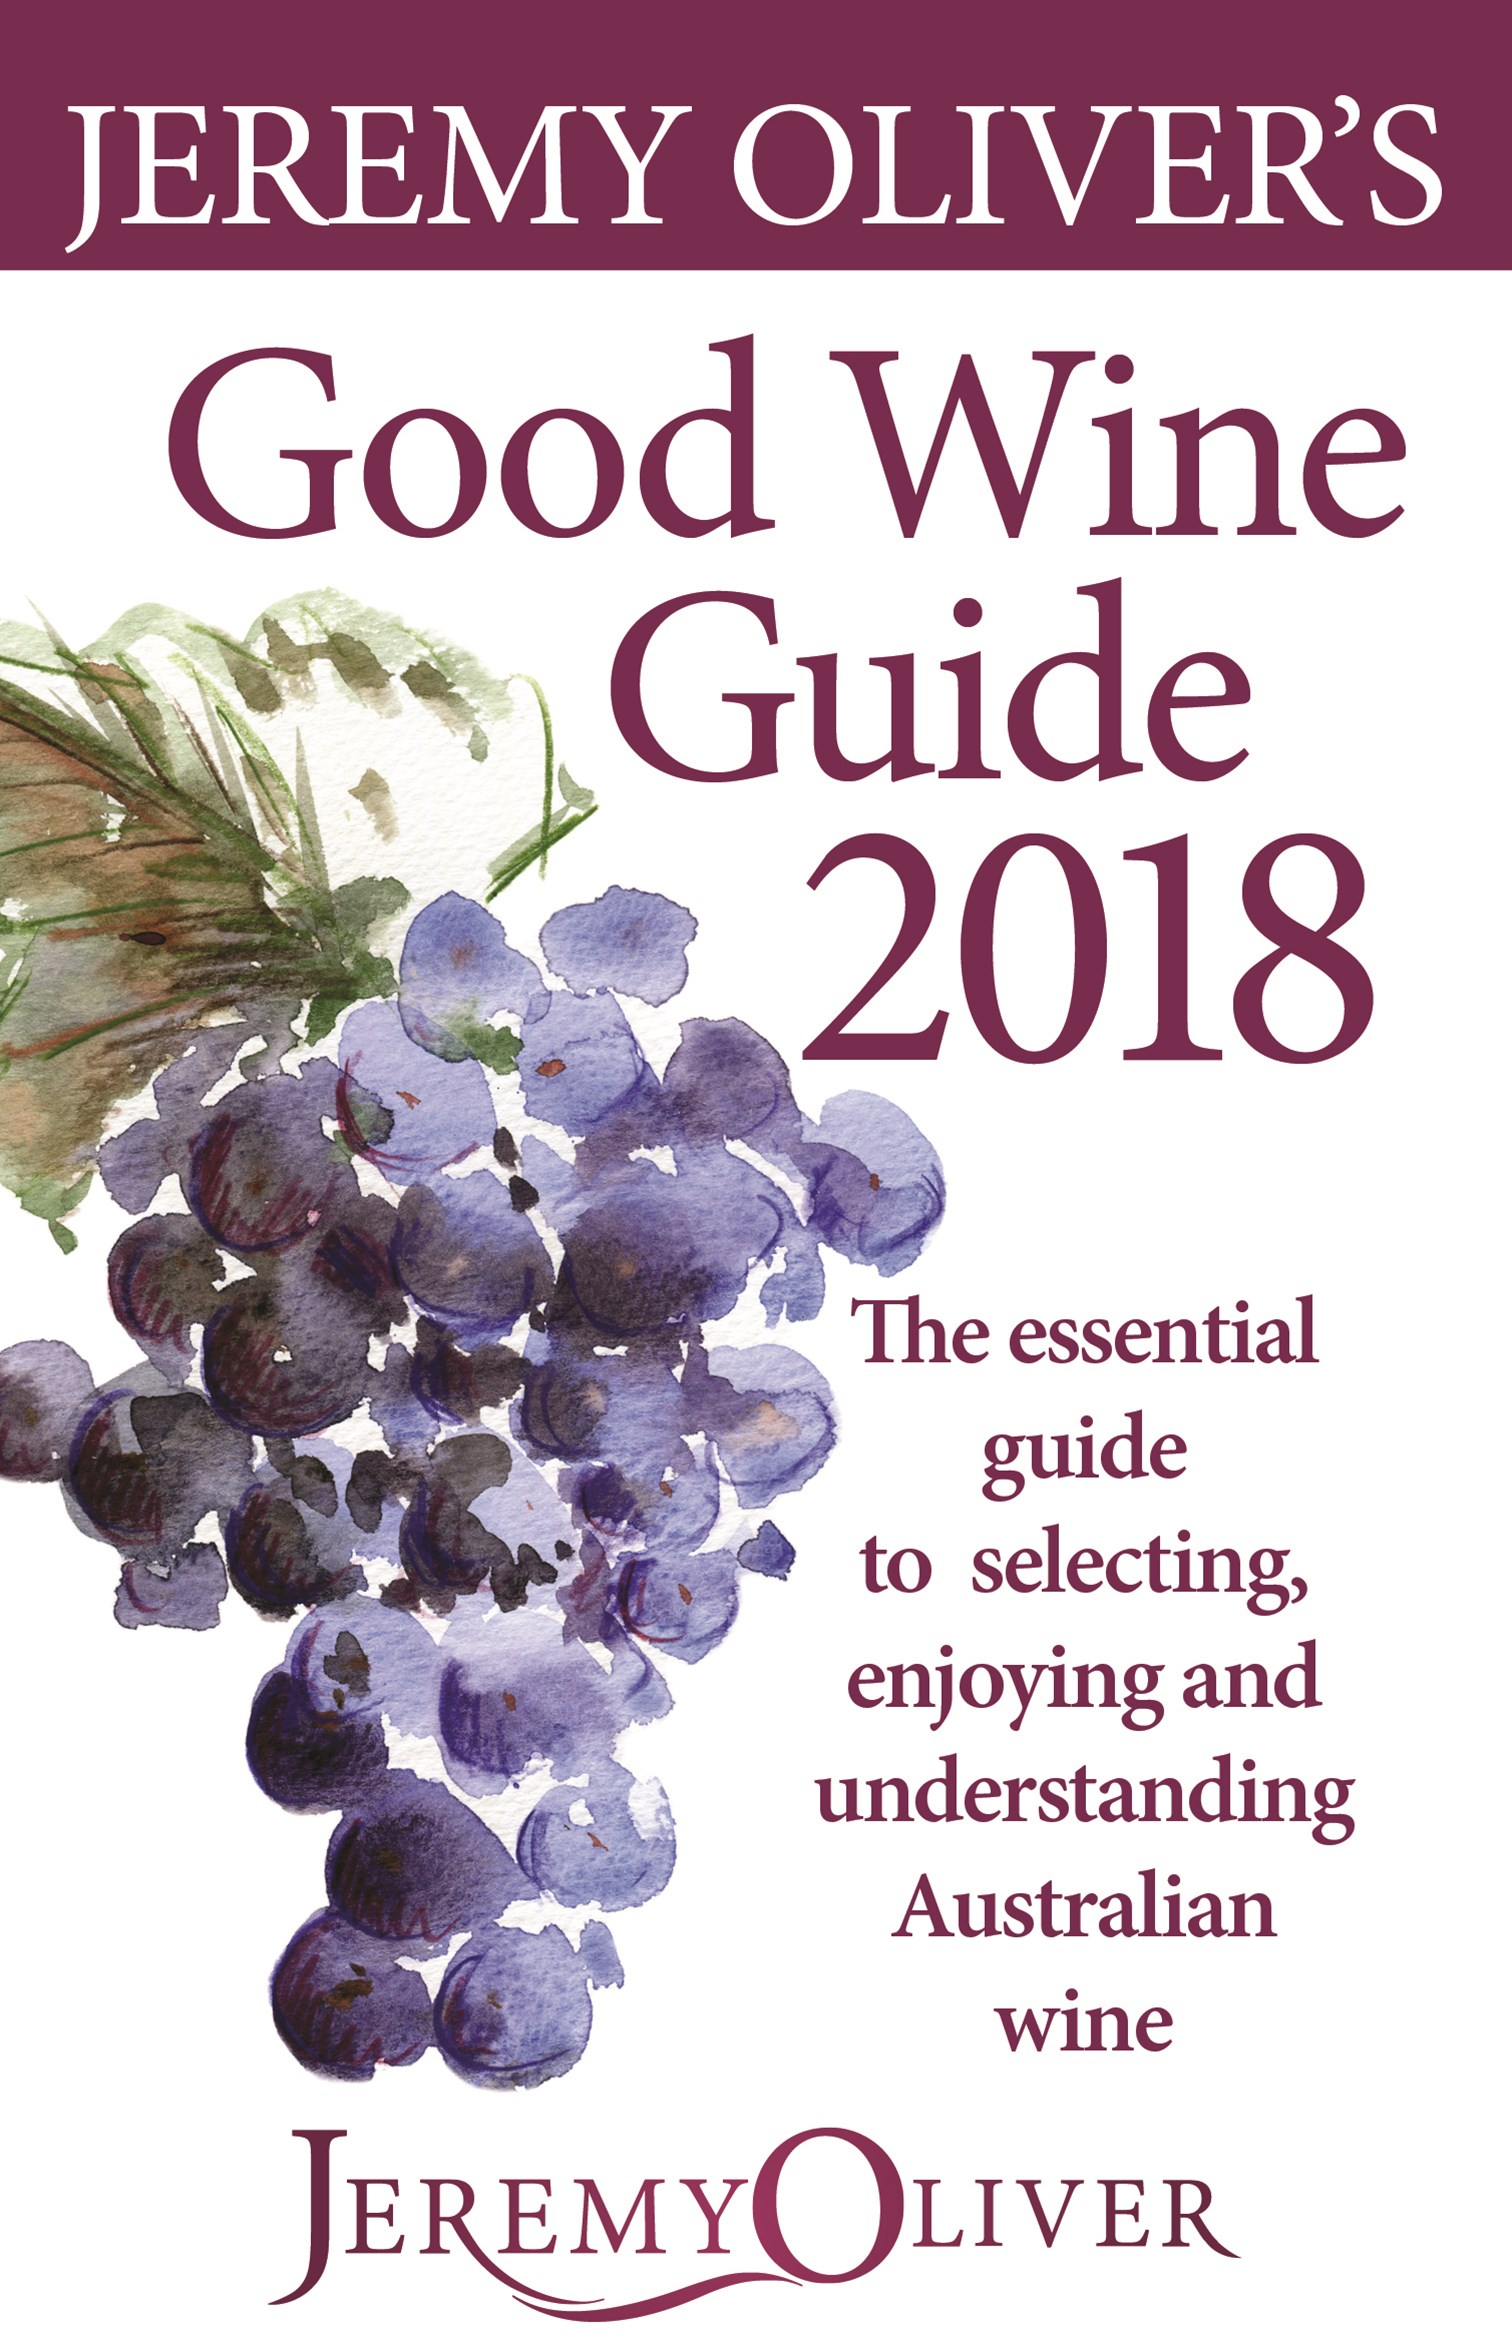 Jeremy Oliver's Good Wine Guide 2018